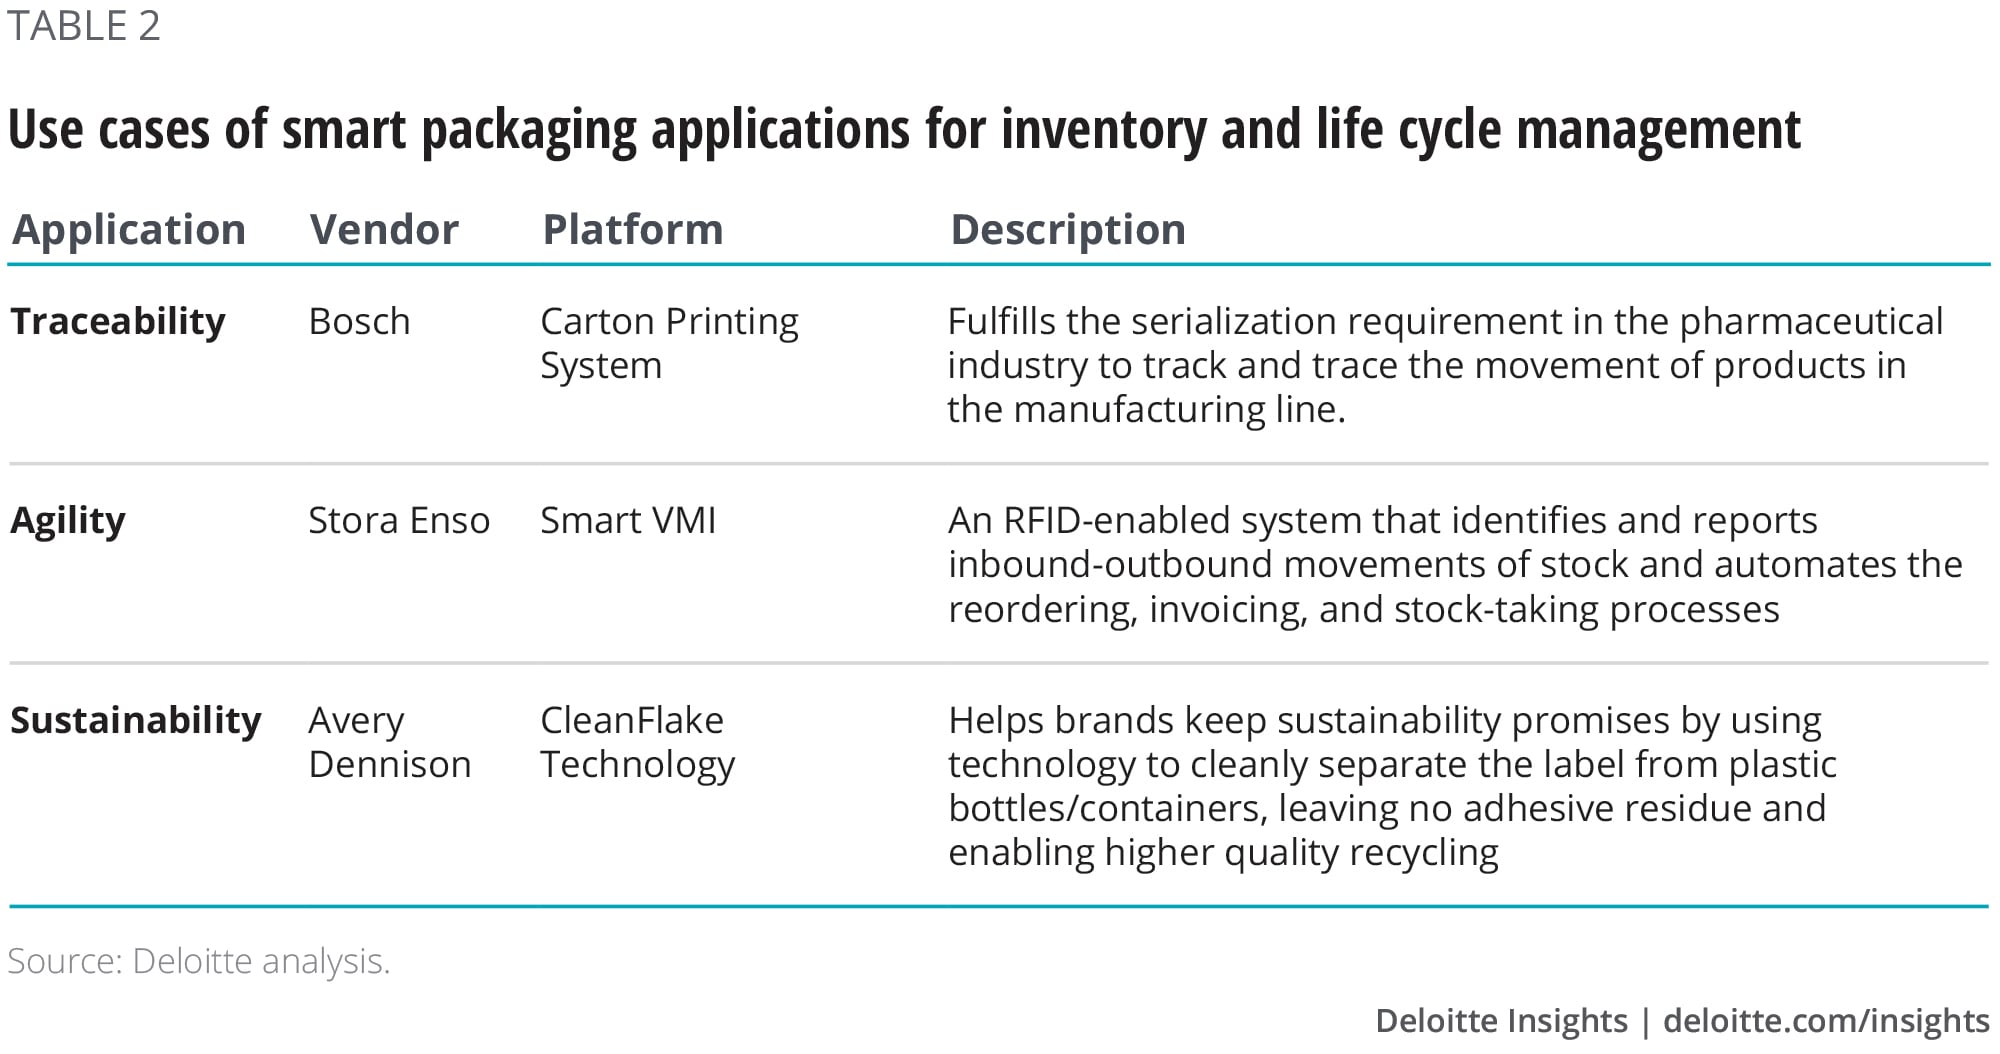 Use cases of smart packaging applications for inventory and life cycle management